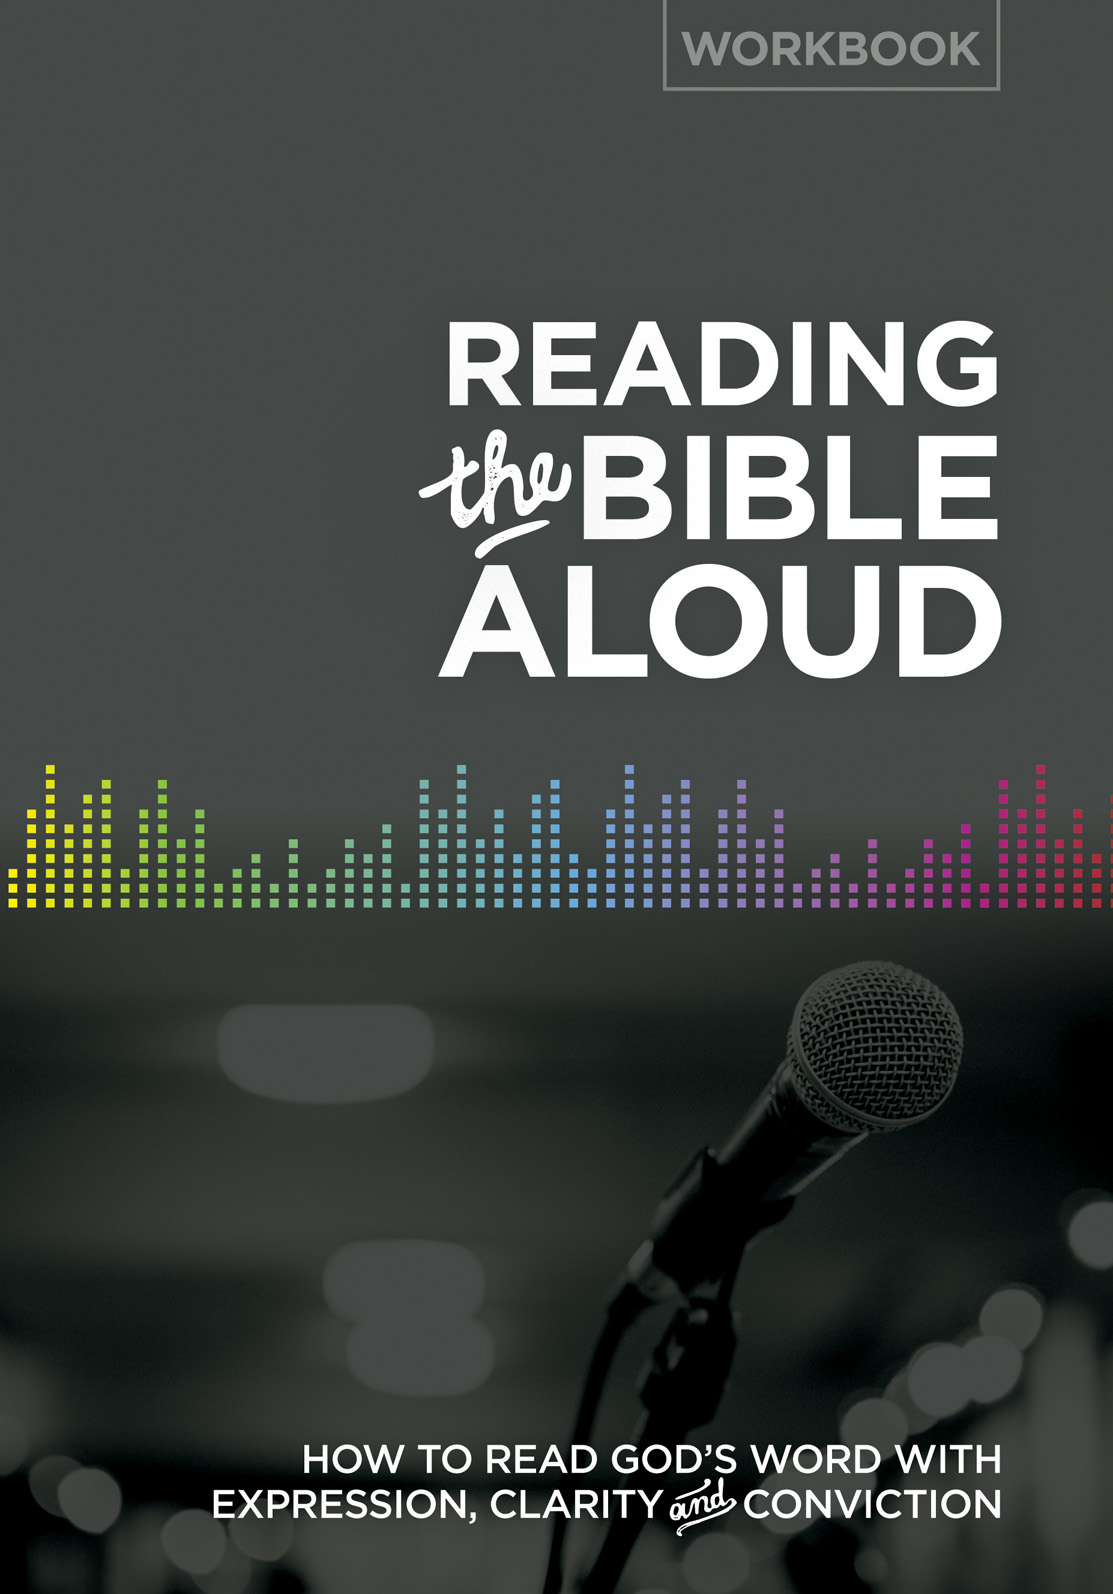 Reading the Bible Aloud (workbook cover)